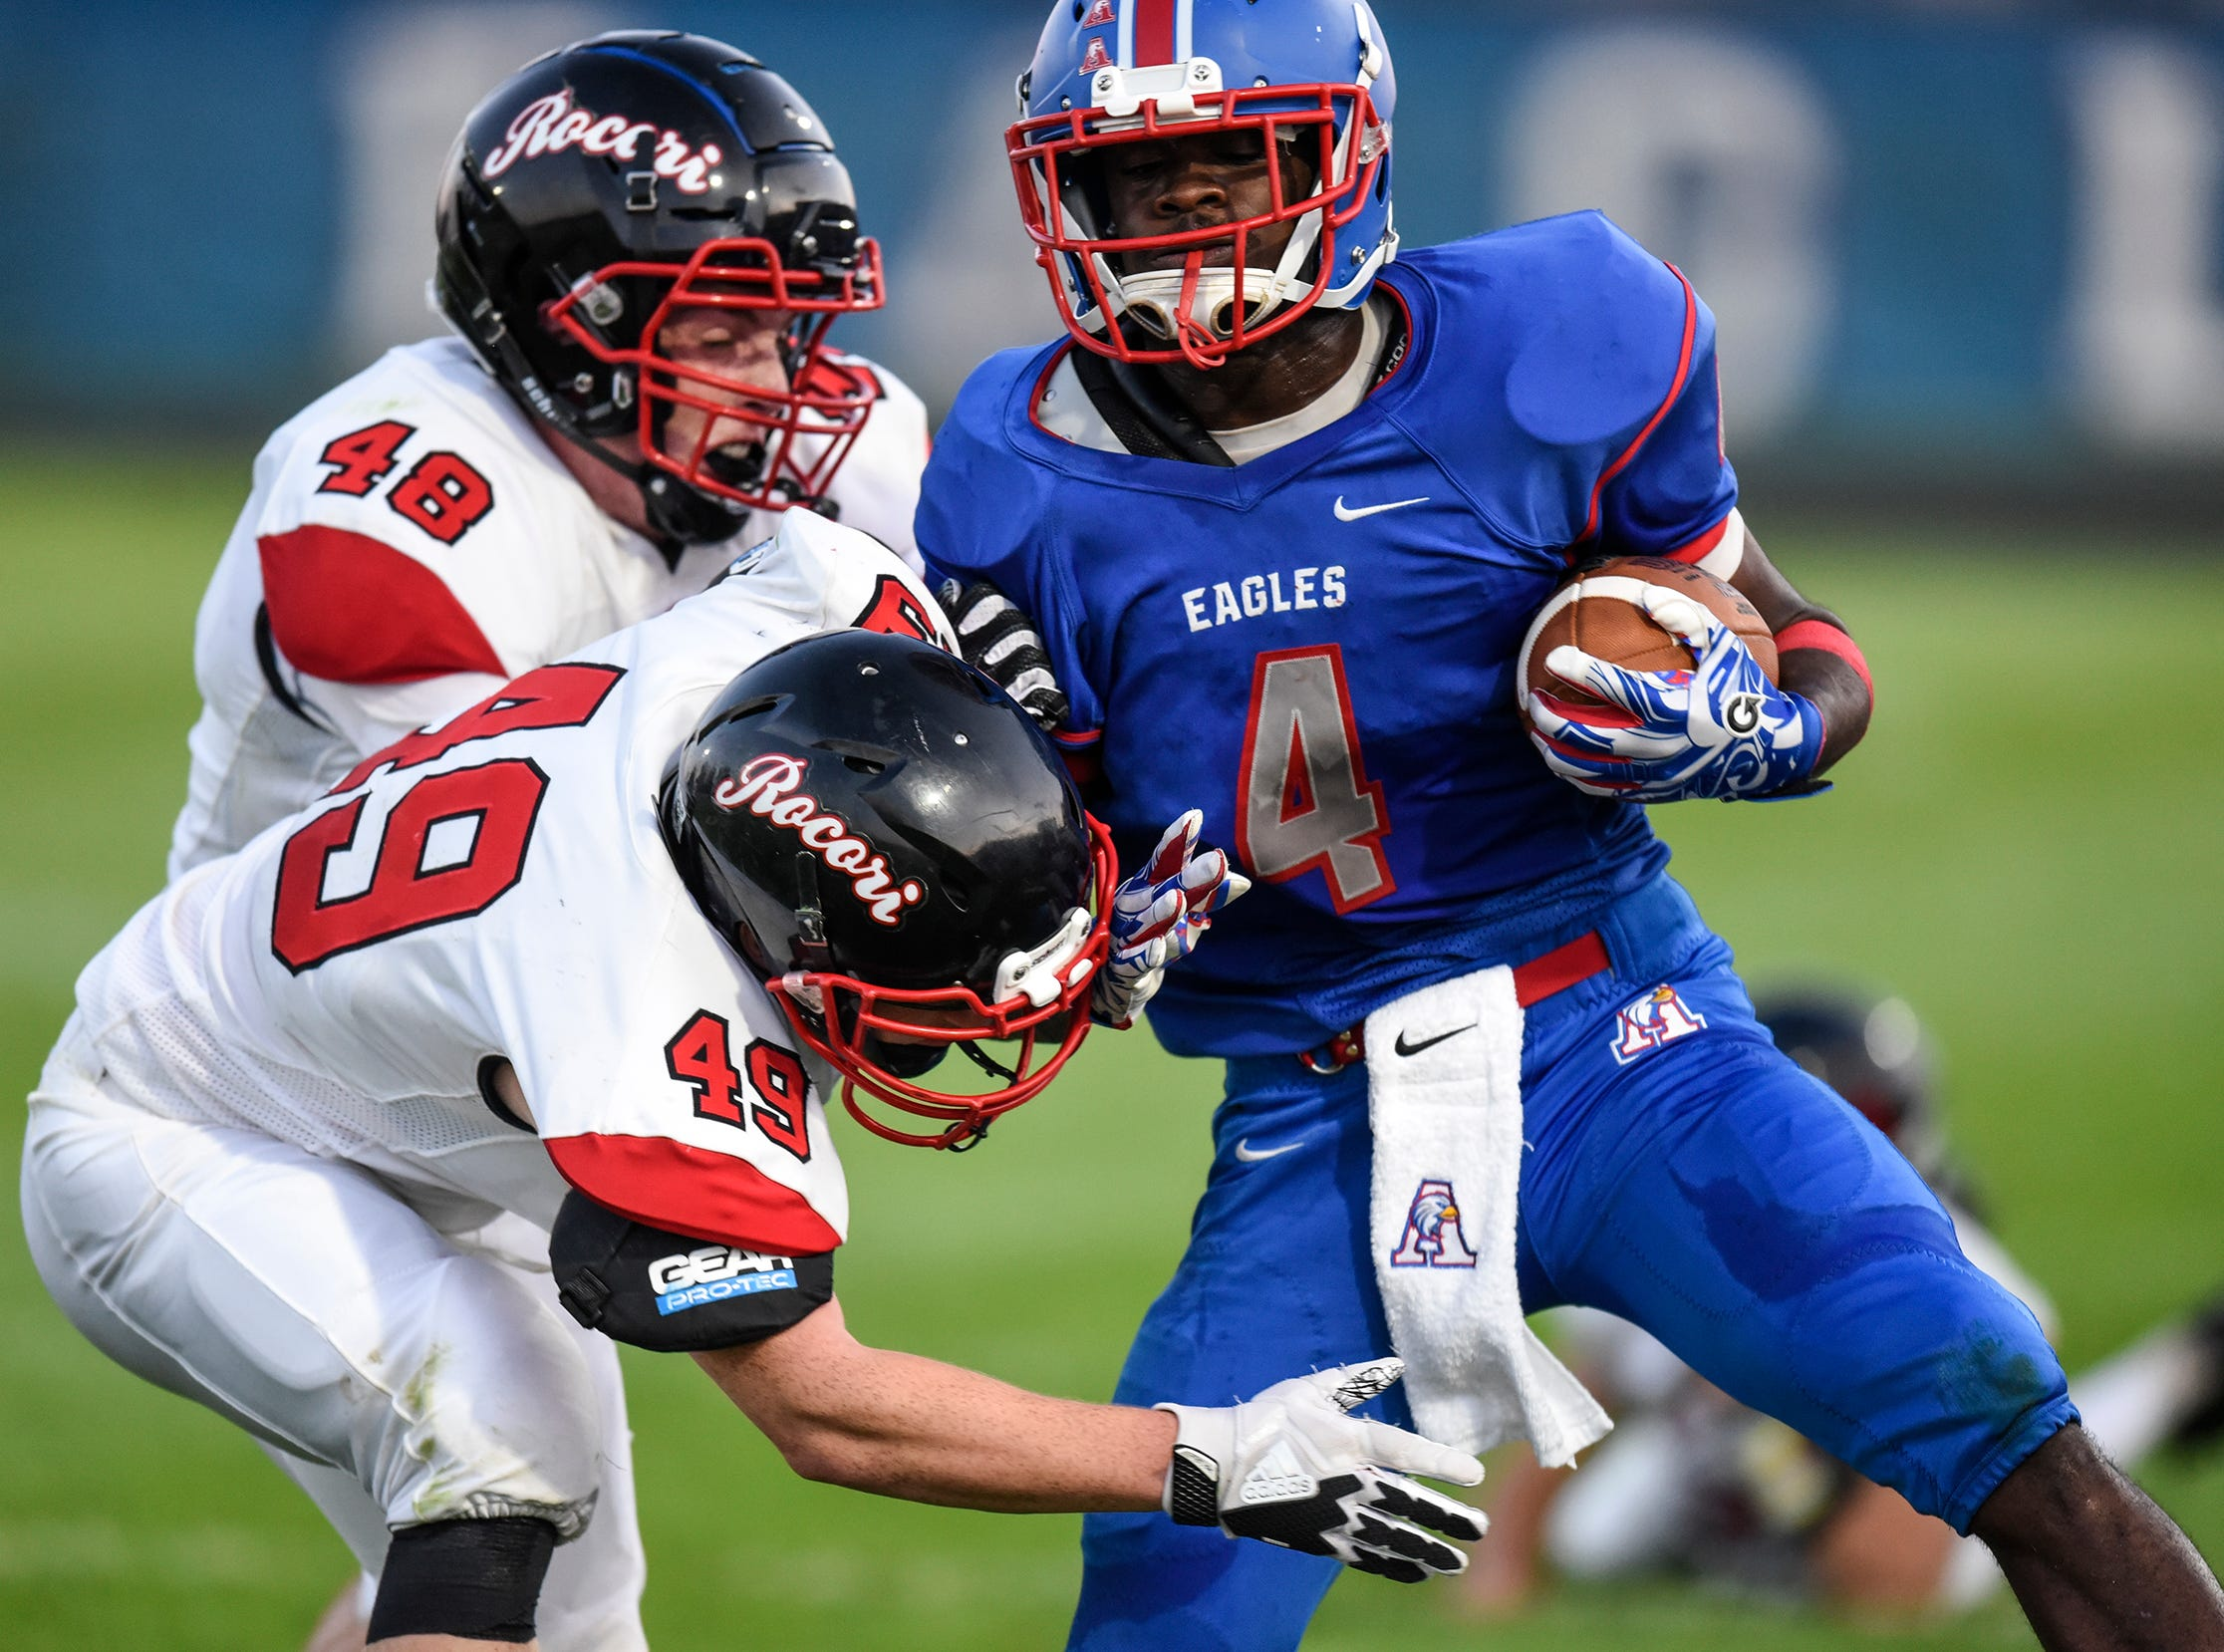 Nathaniel Venable (48) and Alex Wenner (49) of ROCORI team up to tackle Apollo's Clifton Patterson during the Friday, Sept. 7, game at Apollo High School in St. Cloud.